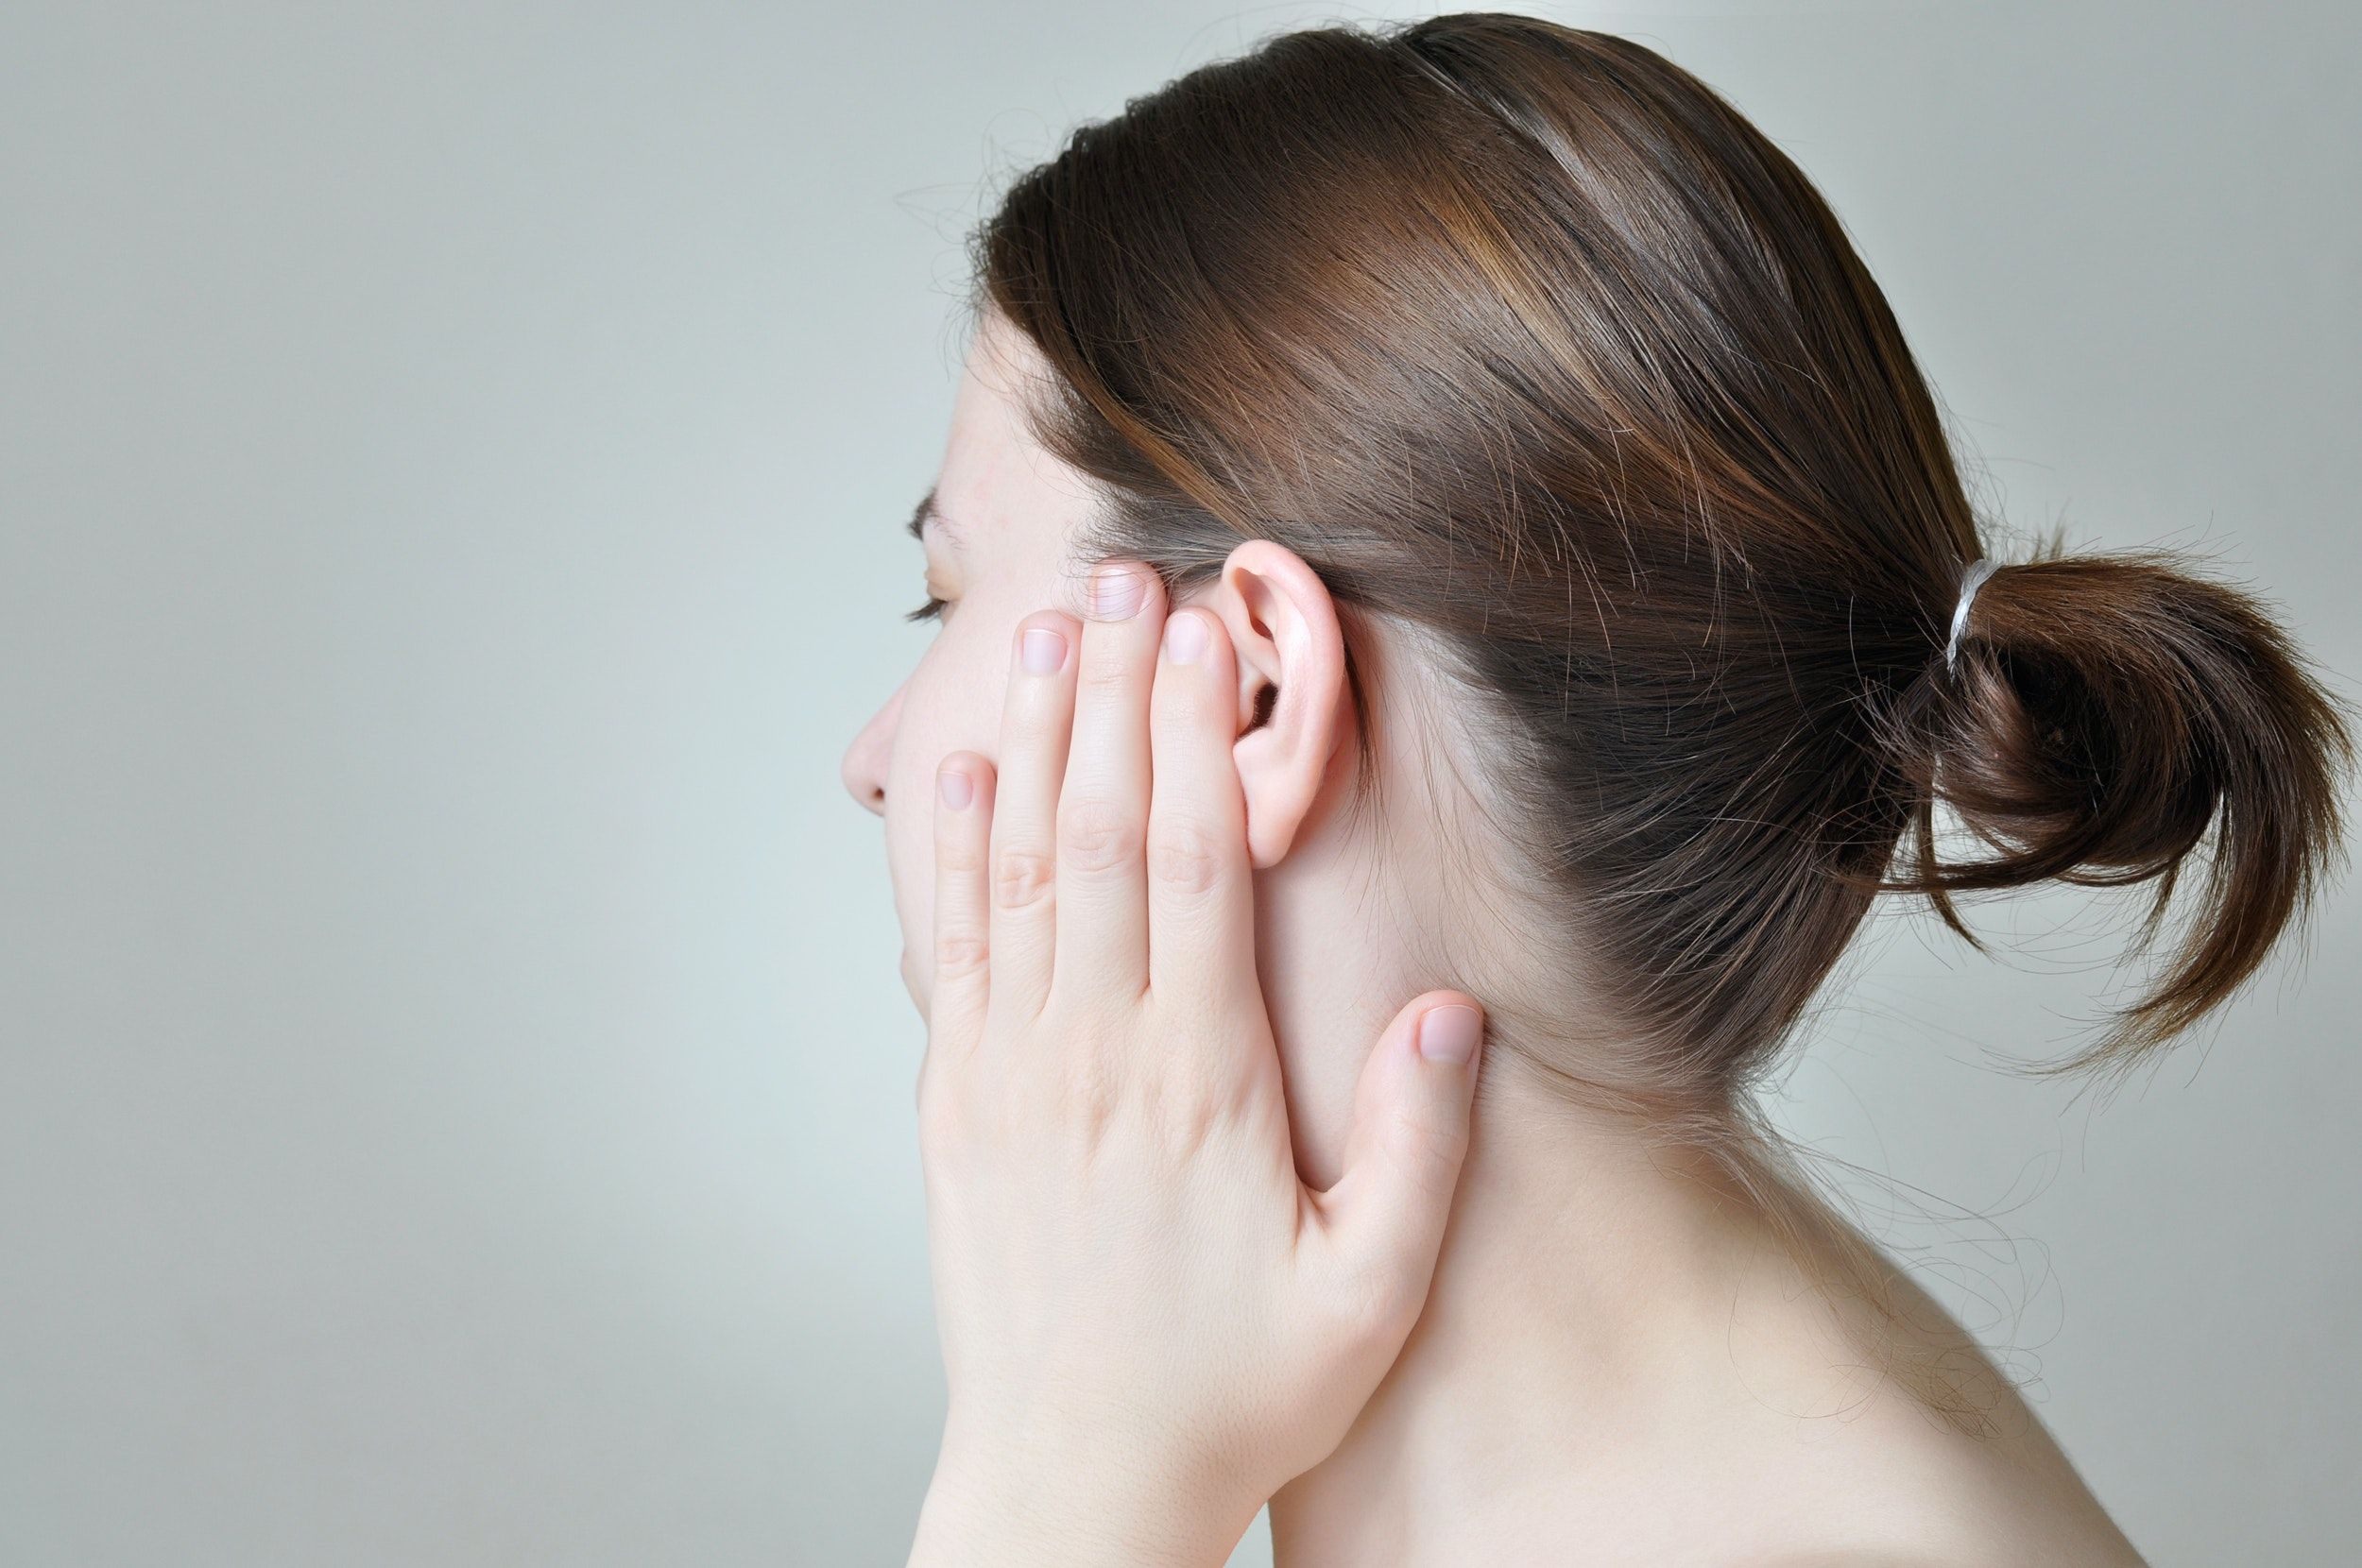 An image depicting a person suffering from ringing in the ears symptoms